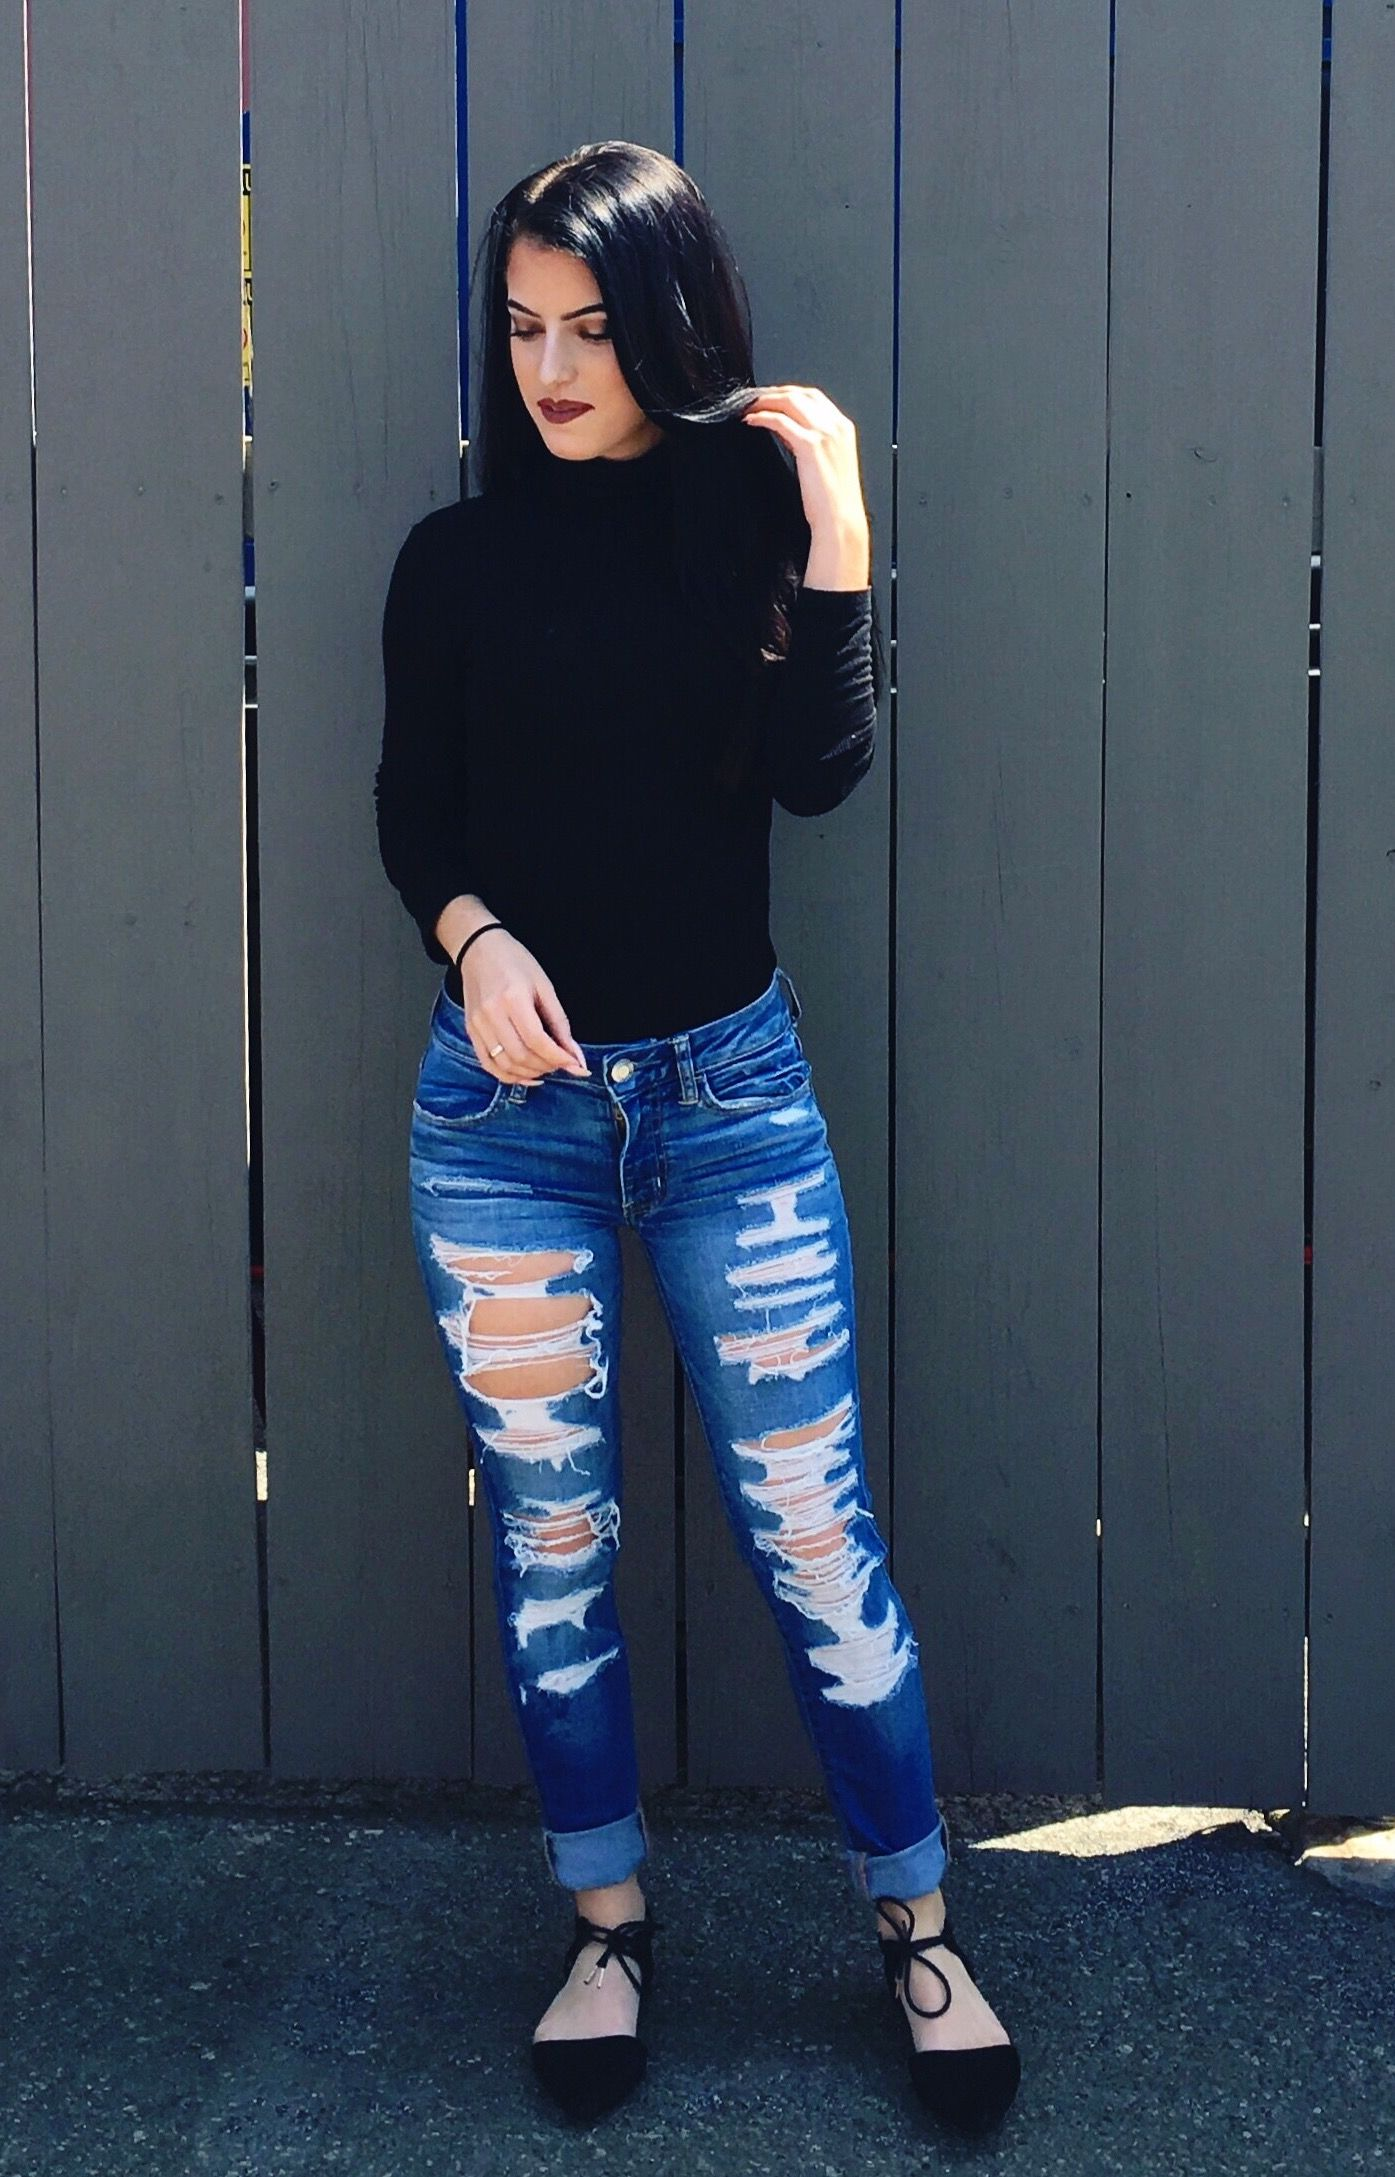 Black Turtle Neck American Eagle Ripped Jeans Ginger Kylie Lip Kit Black Tie Flats American Eagle Ripped Jeans American Eagle Outfits Fall Fashion Outfits